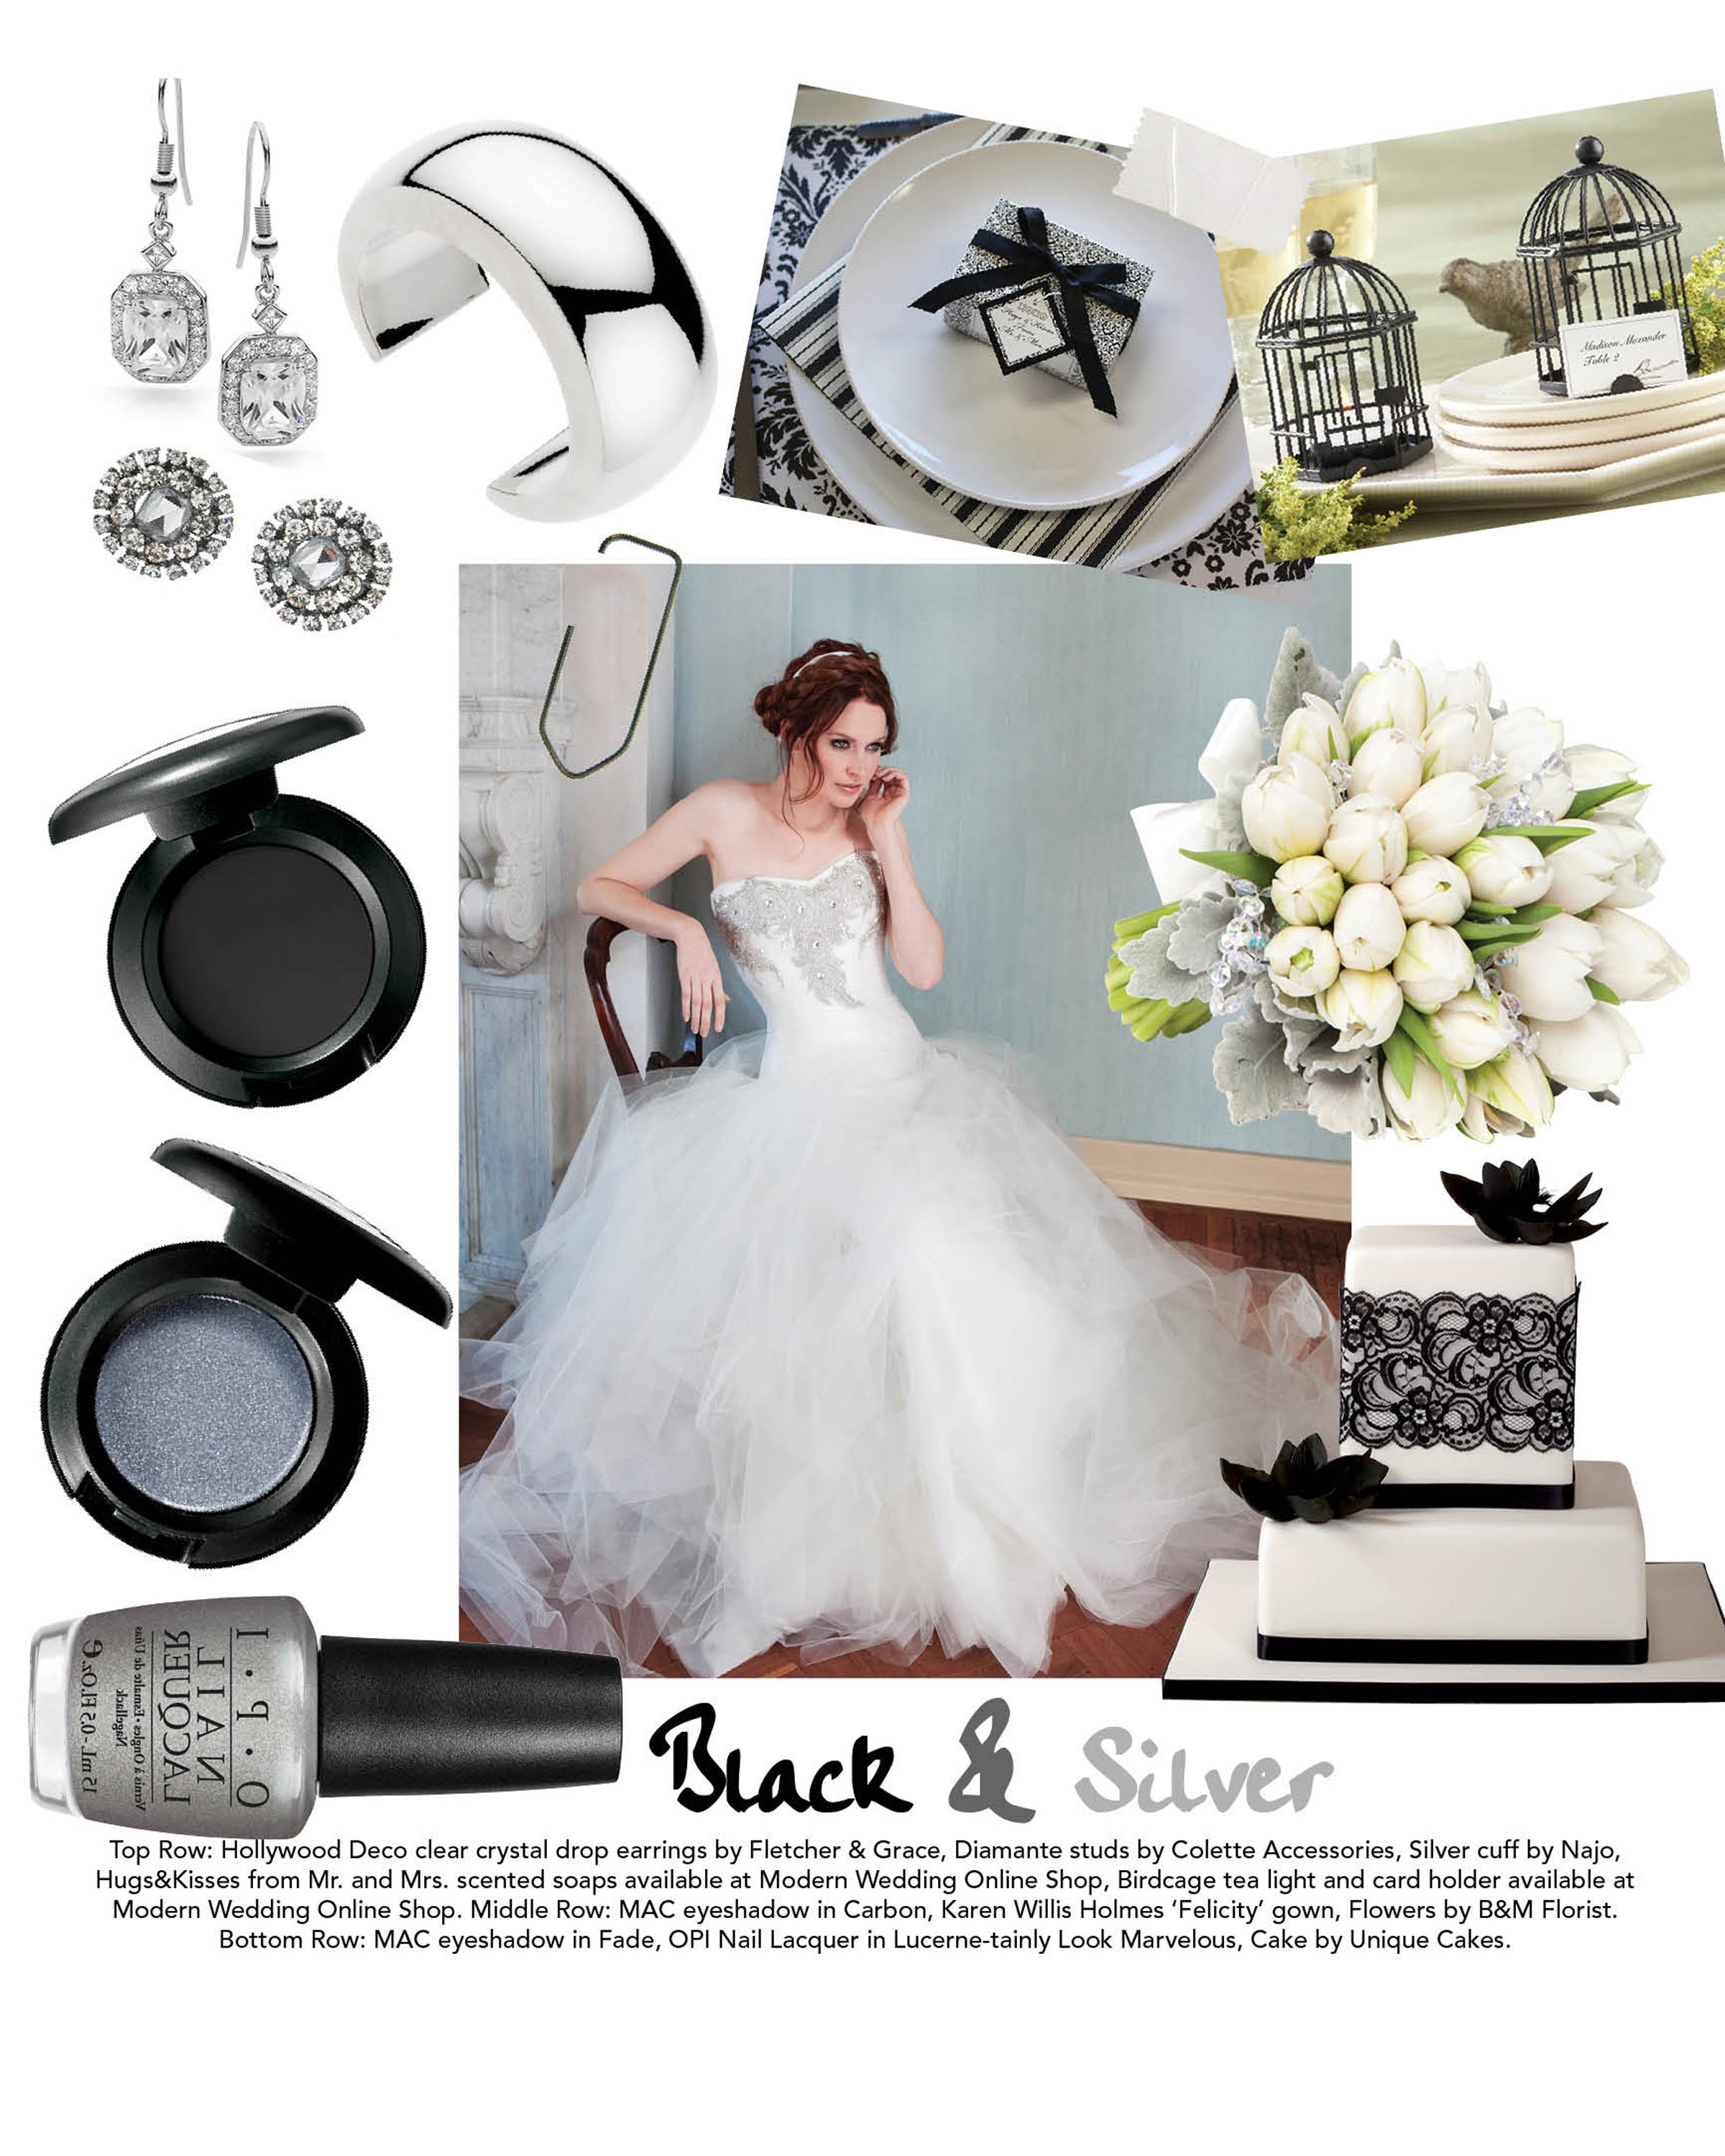 Check out the inspiration board below Hints for a black silver wedding